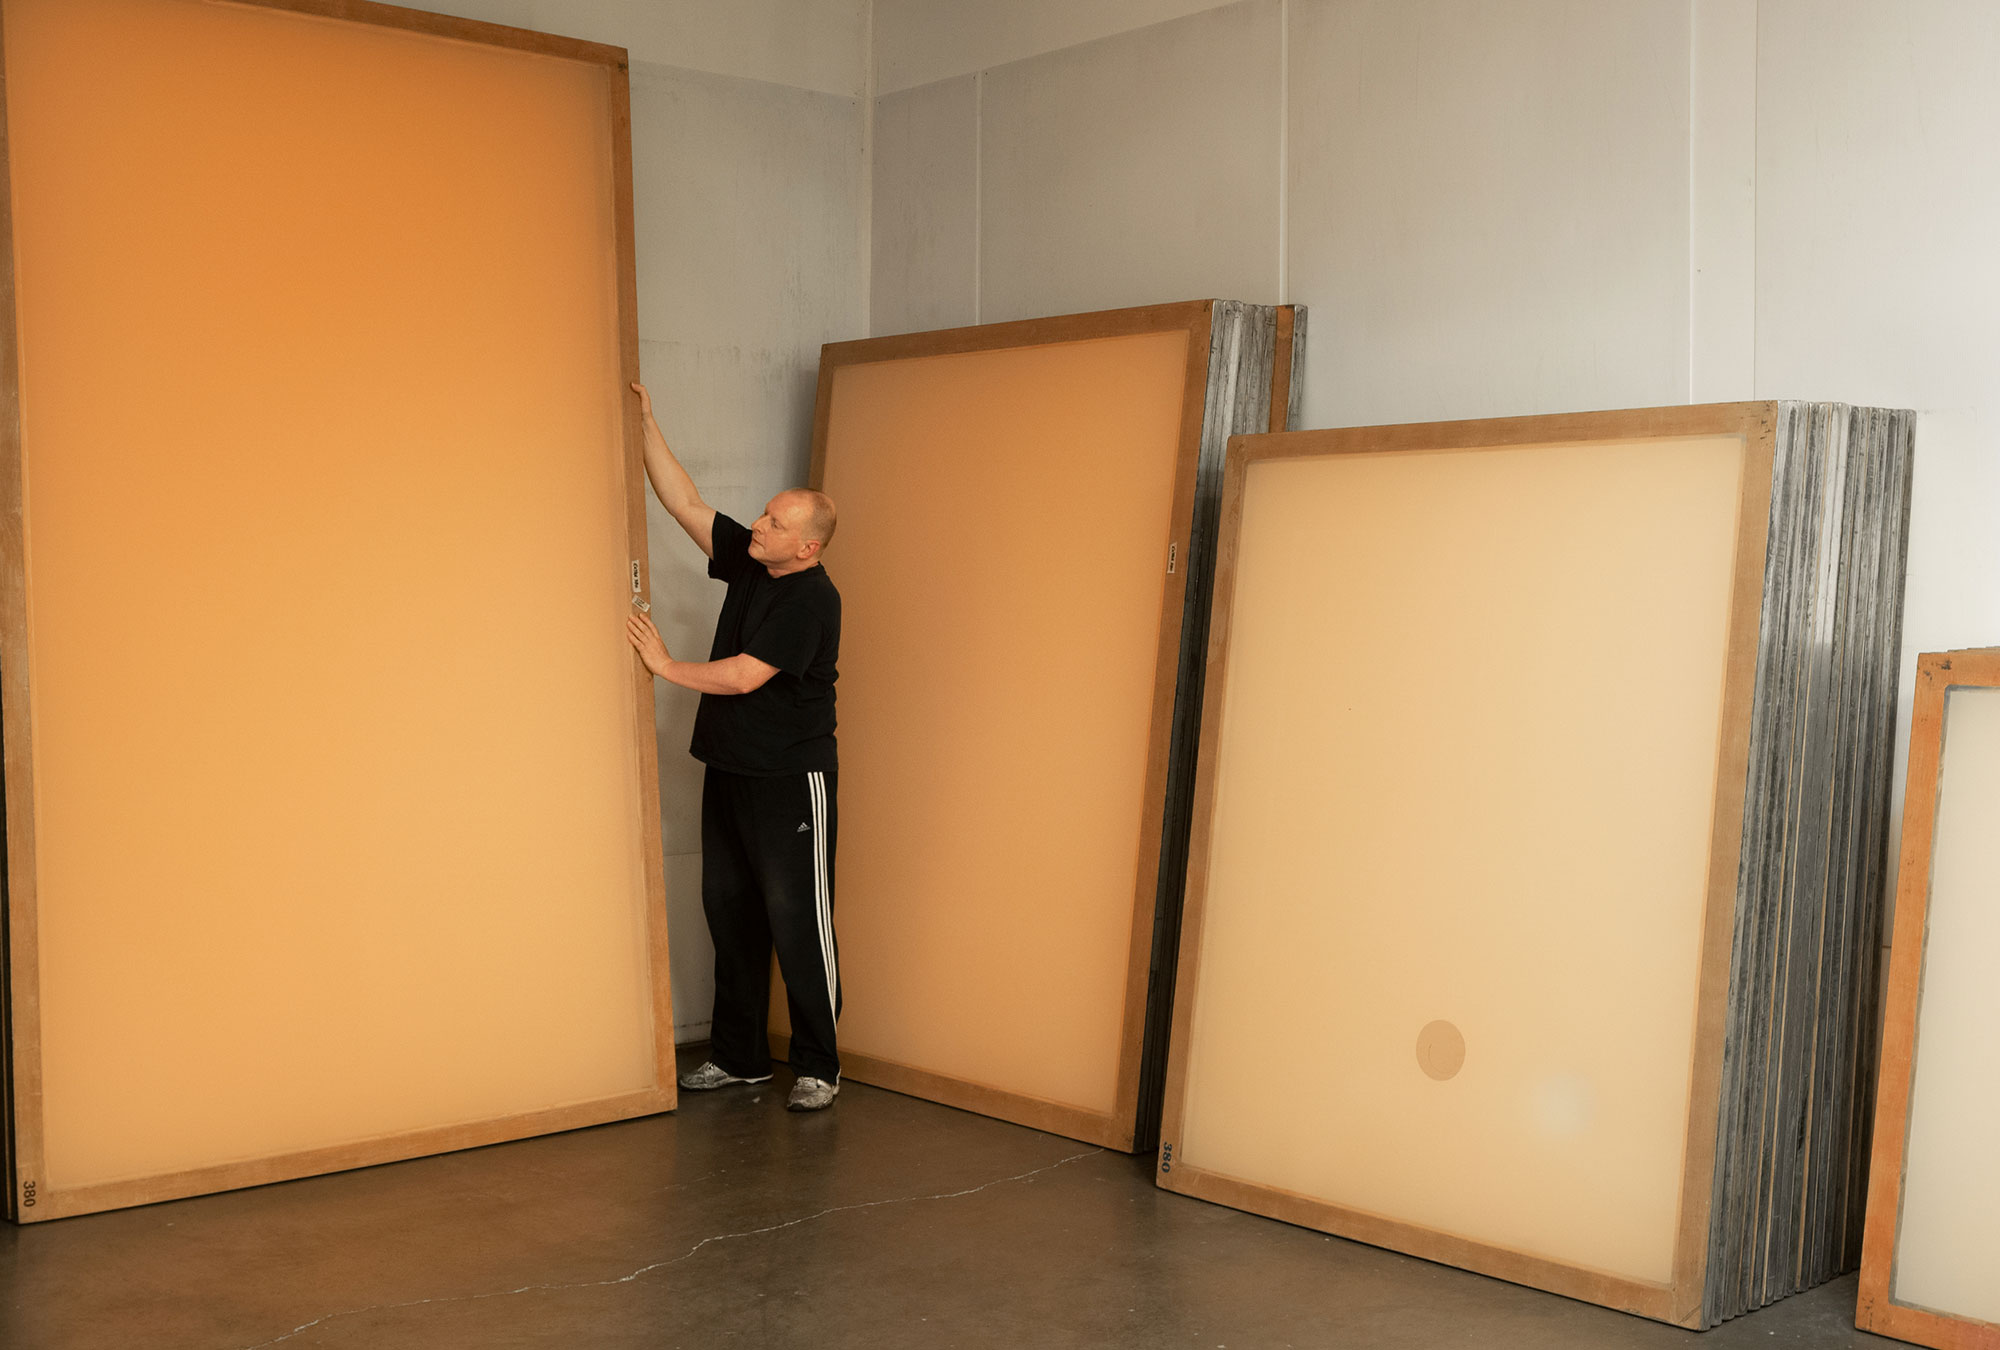 Screen press operator standing next to screens larger than him